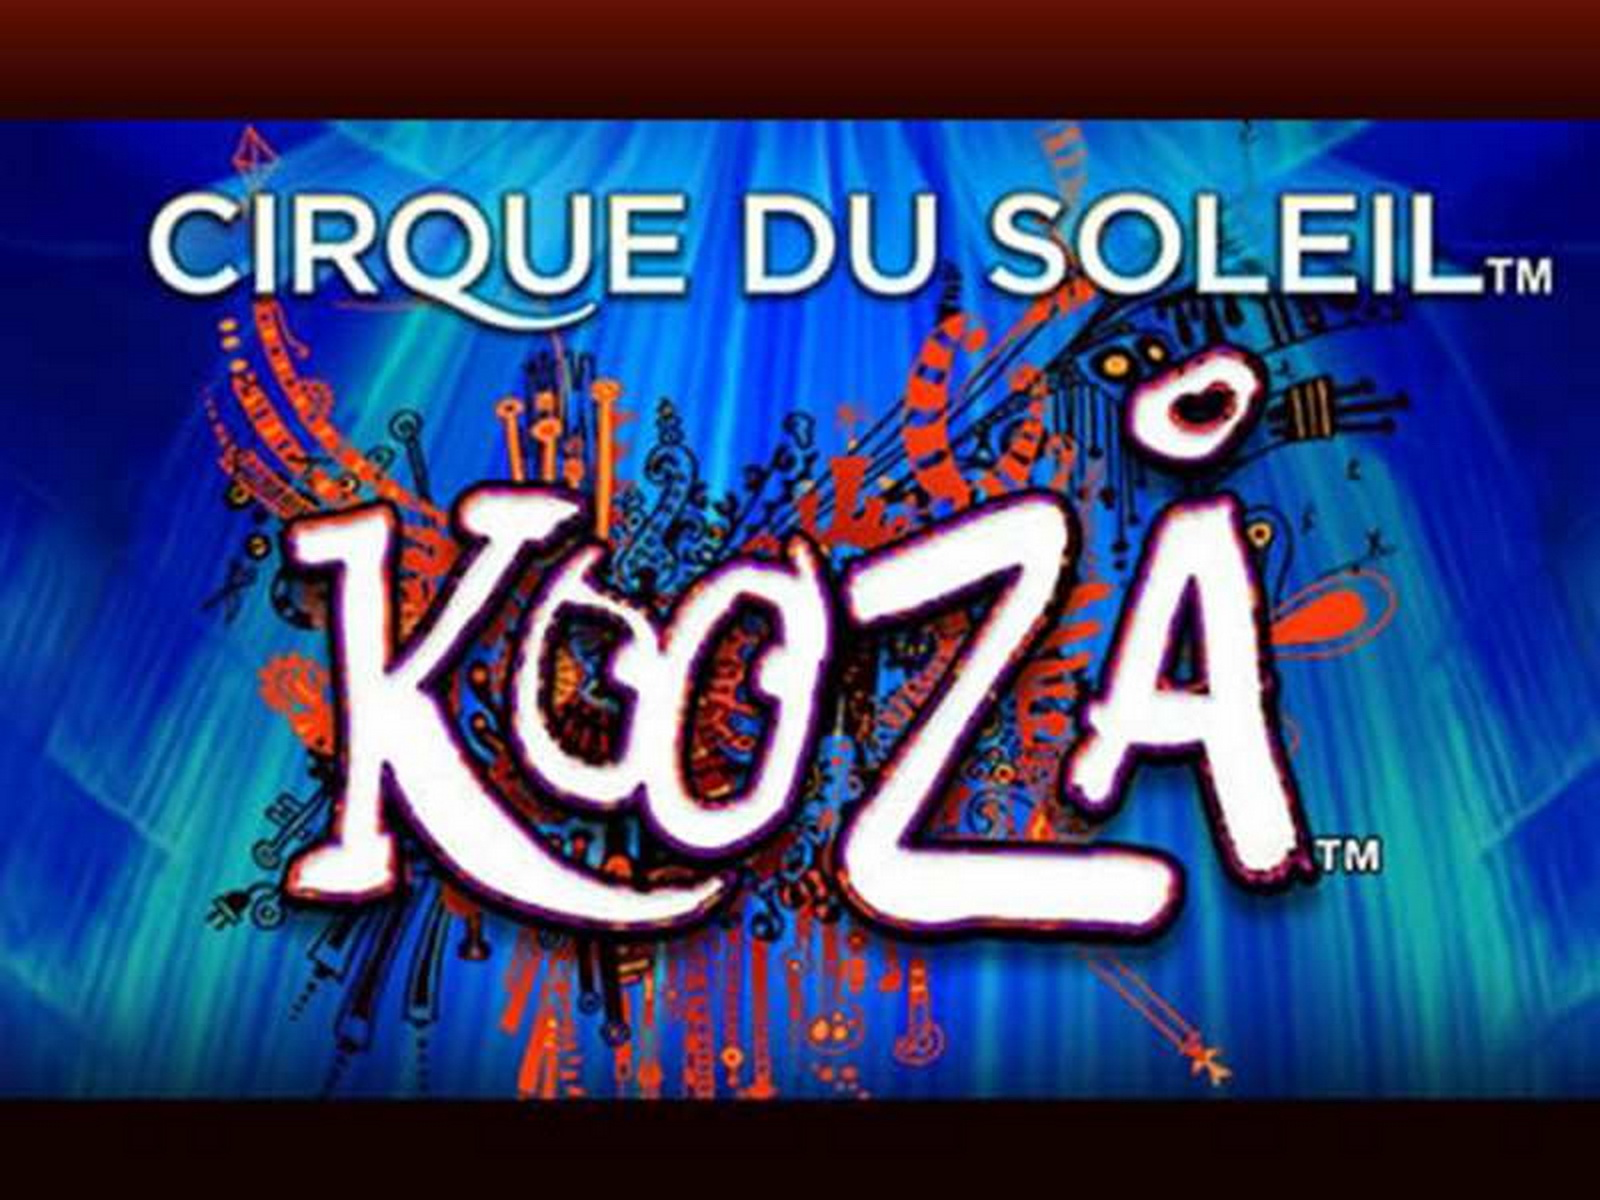 The Cirque Du Soleil Kooza Online Slot Demo Game by Bally